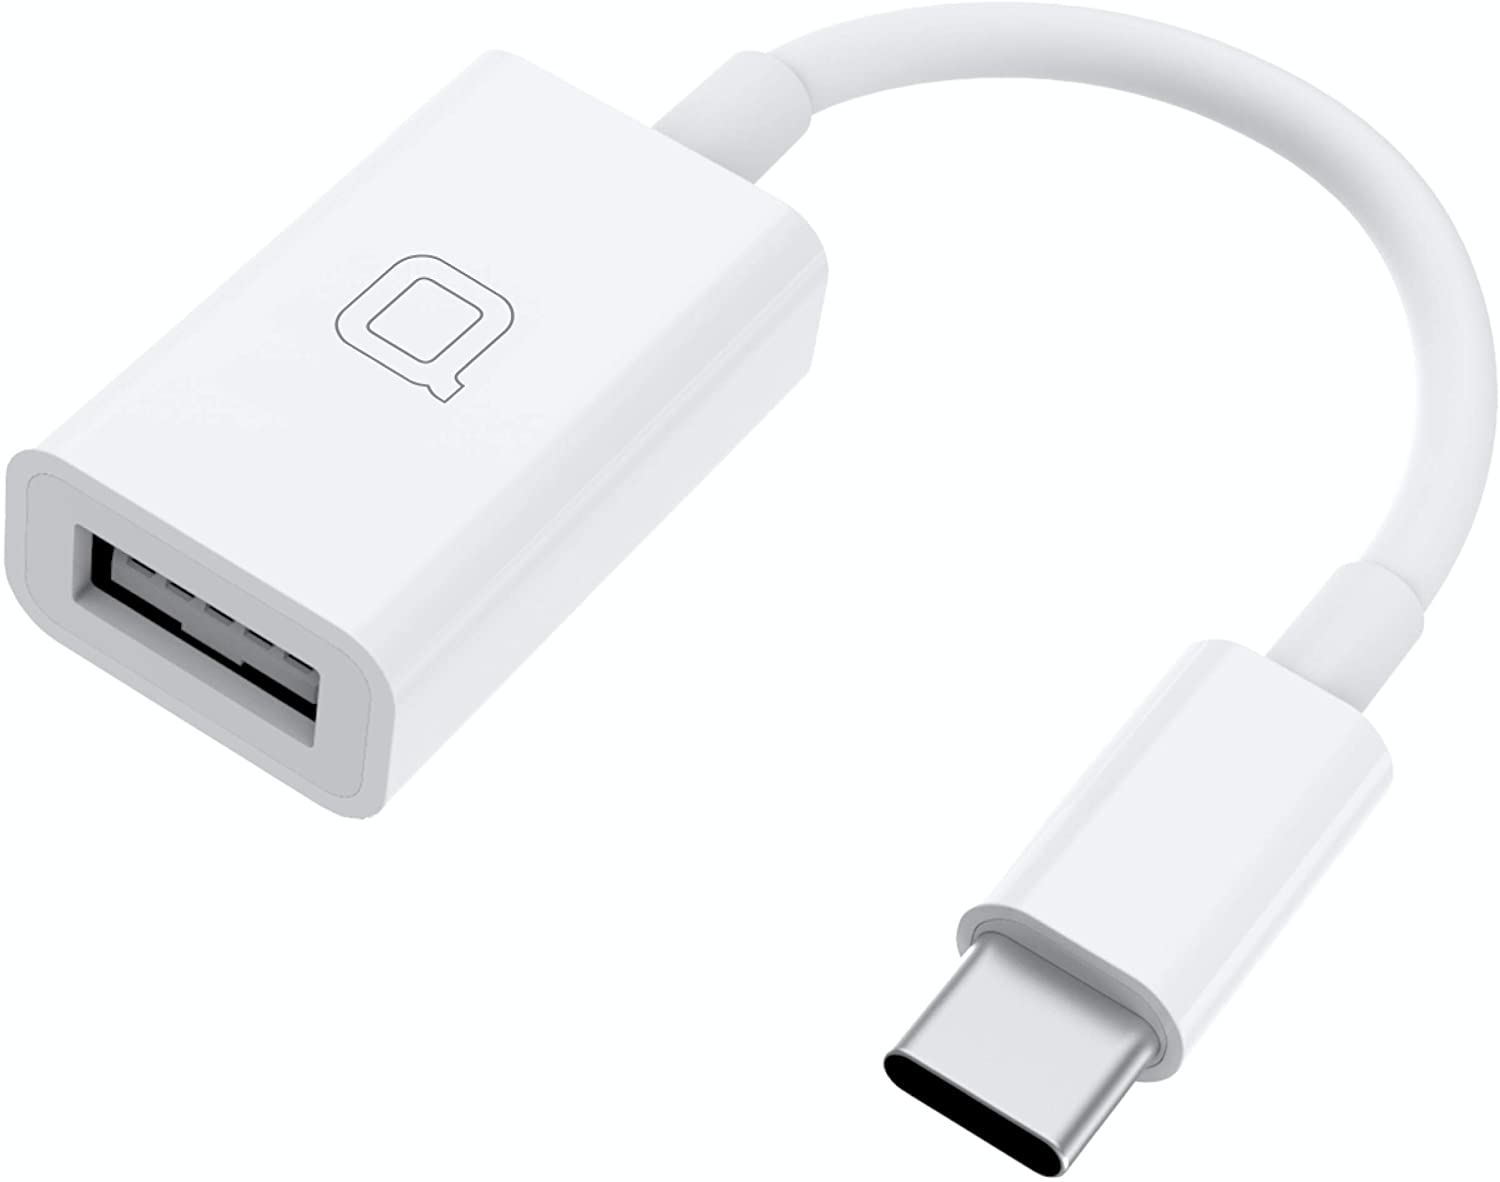 nonda USB C to USB Adapter,USB-C to USB 3.0 Adapter,USB Type-C to USB,Thunderbolt 3 to USB Female Adapter OTG for MacBook Pro 2019,MacBook Air 2020,iPad Pro 2020,More Type-C Devices(White), 1 Pack